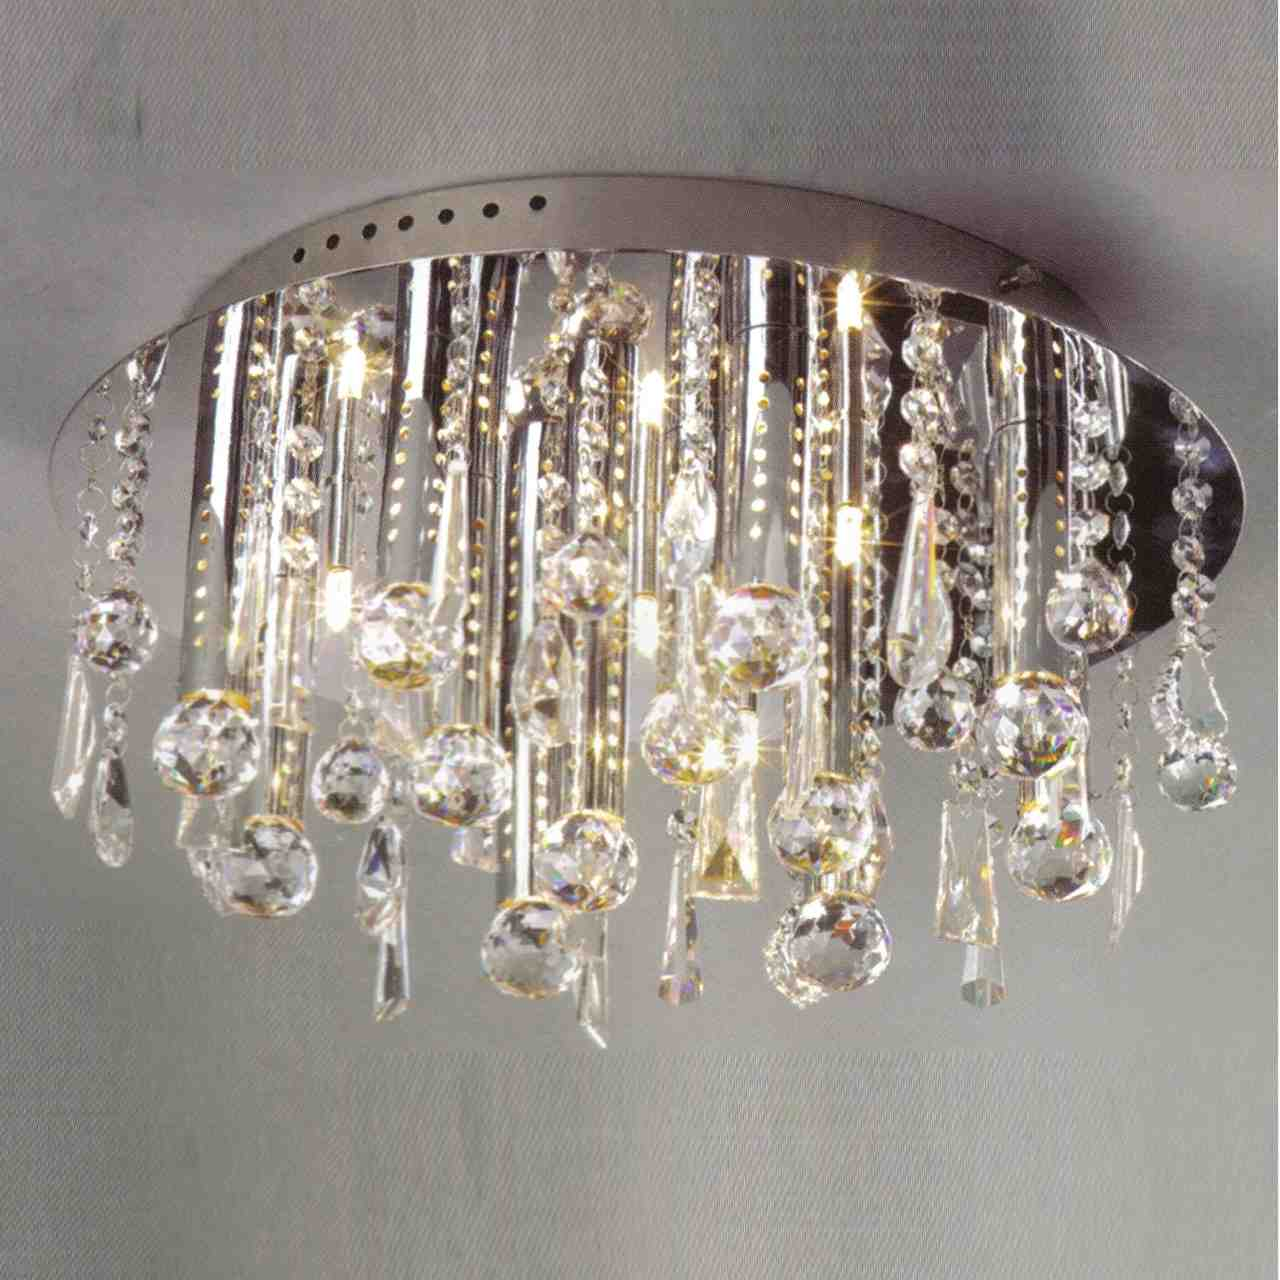 Brizzo lighting stores 14 miraggio modern crystal flush mount picture of 14 miraggio modern crystal flush mount round chandelier polished chrome 12 lights aloadofball Images